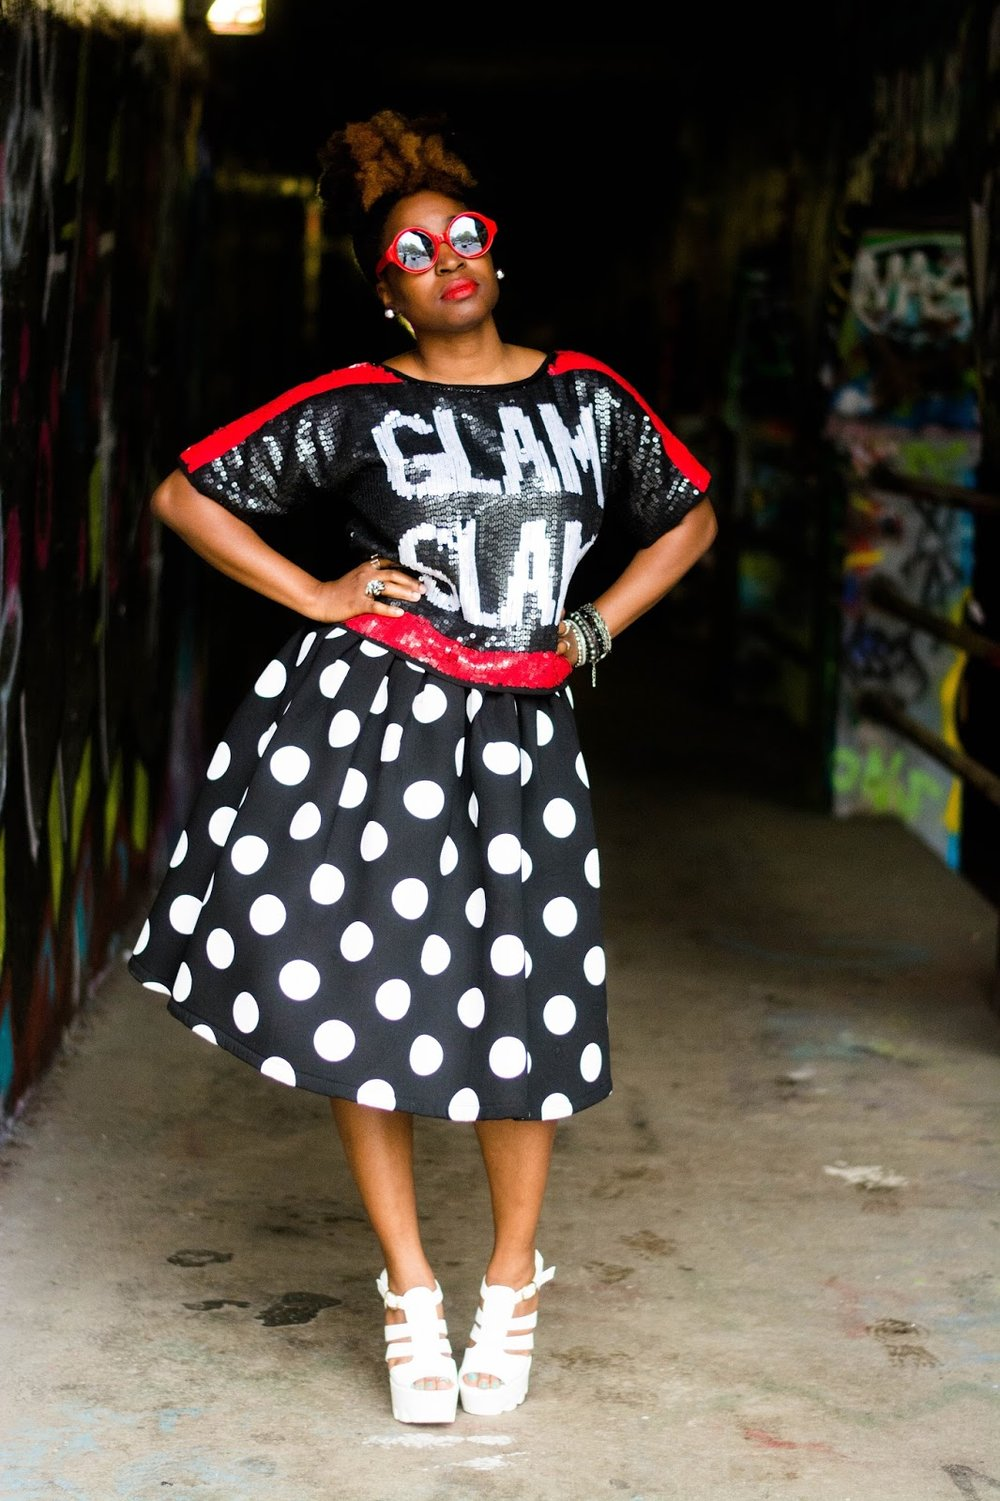 Atlanta style blogger, Atlanta blogger, Atlanta stylist, Wardrobe stylist, street style, black girls rock, black girls killing it, Charlotte Russe Shoes, Diva Diva Boutique, Plato's Closet, Polka dot skirt, Sequin top, Street fashion, black and white, Natural girls rock, Natural hair, Black bloggers, Red sunnies, Thrifted fashion, Thrifting Atlanta, Atlanta fashion, Style blogger, Fashion blogger